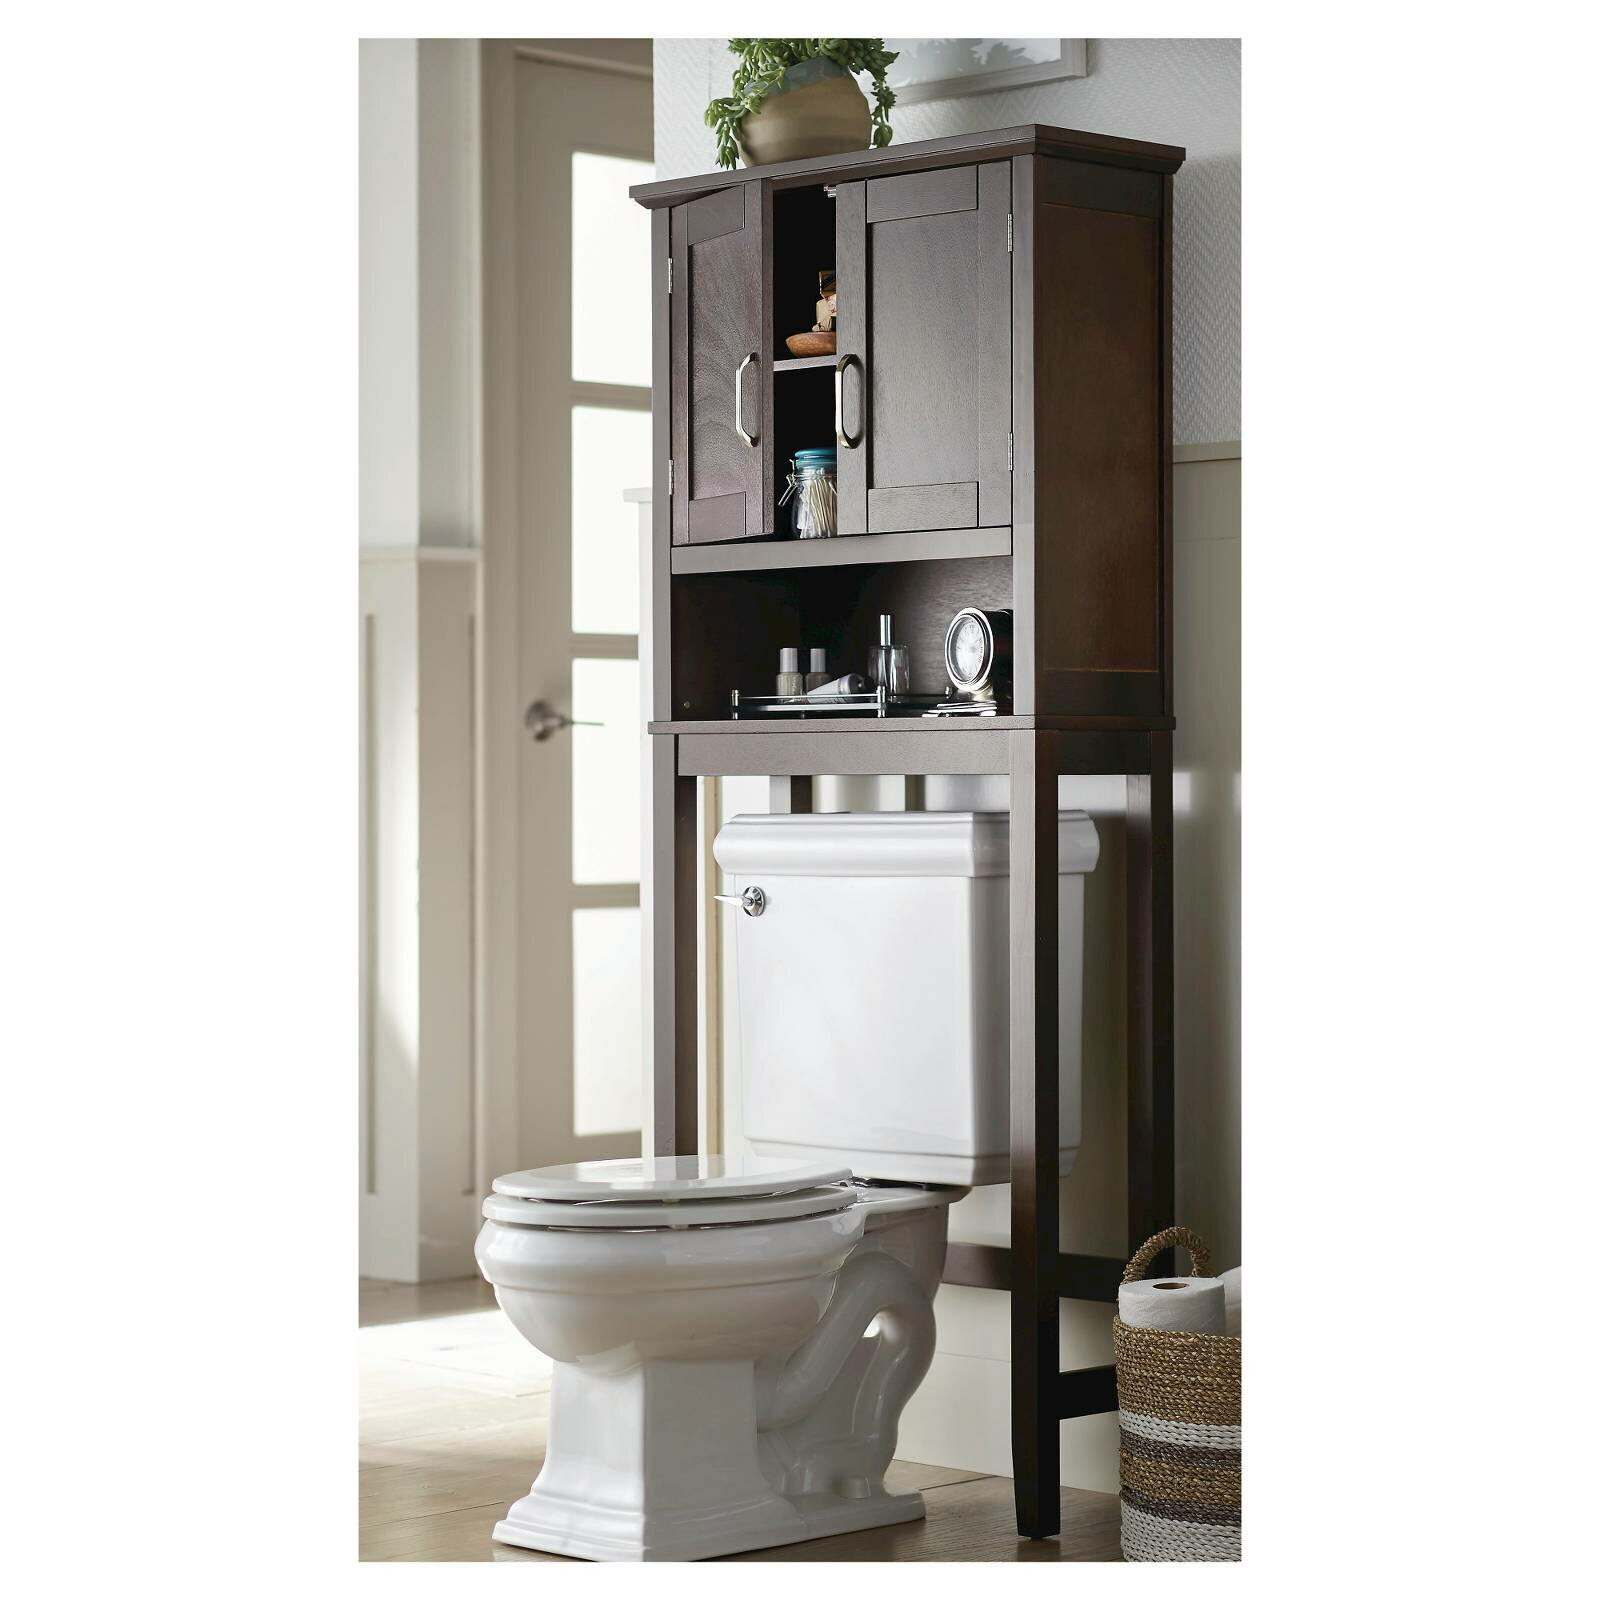 Shelf Behind Toilet Full Image For Stupendous Behind Toilet Bathroom Shelf Bed Bath And Beyond